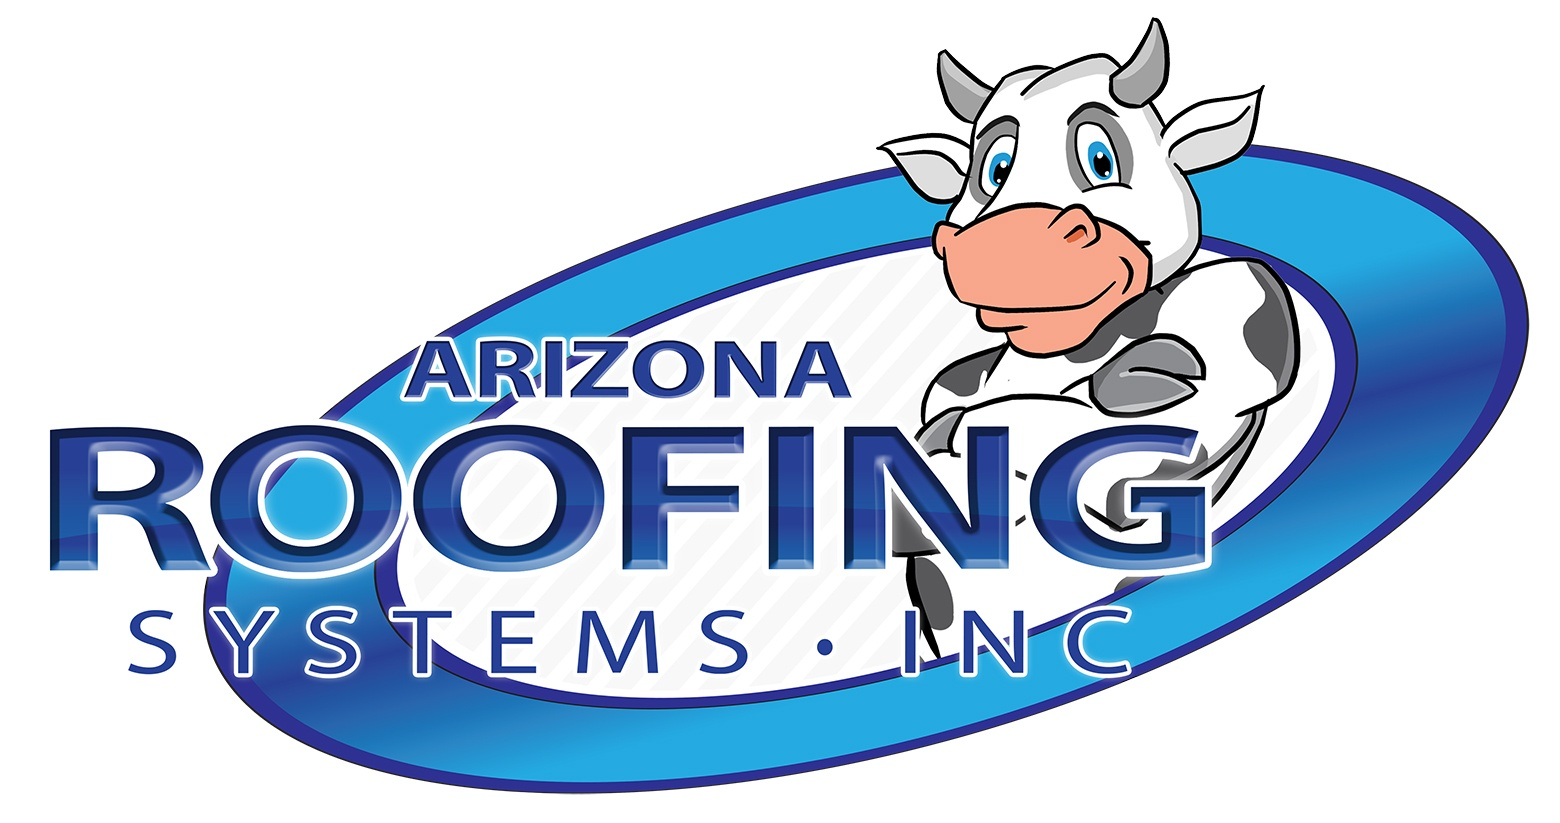 Arizona Roofing Systems, Inc.